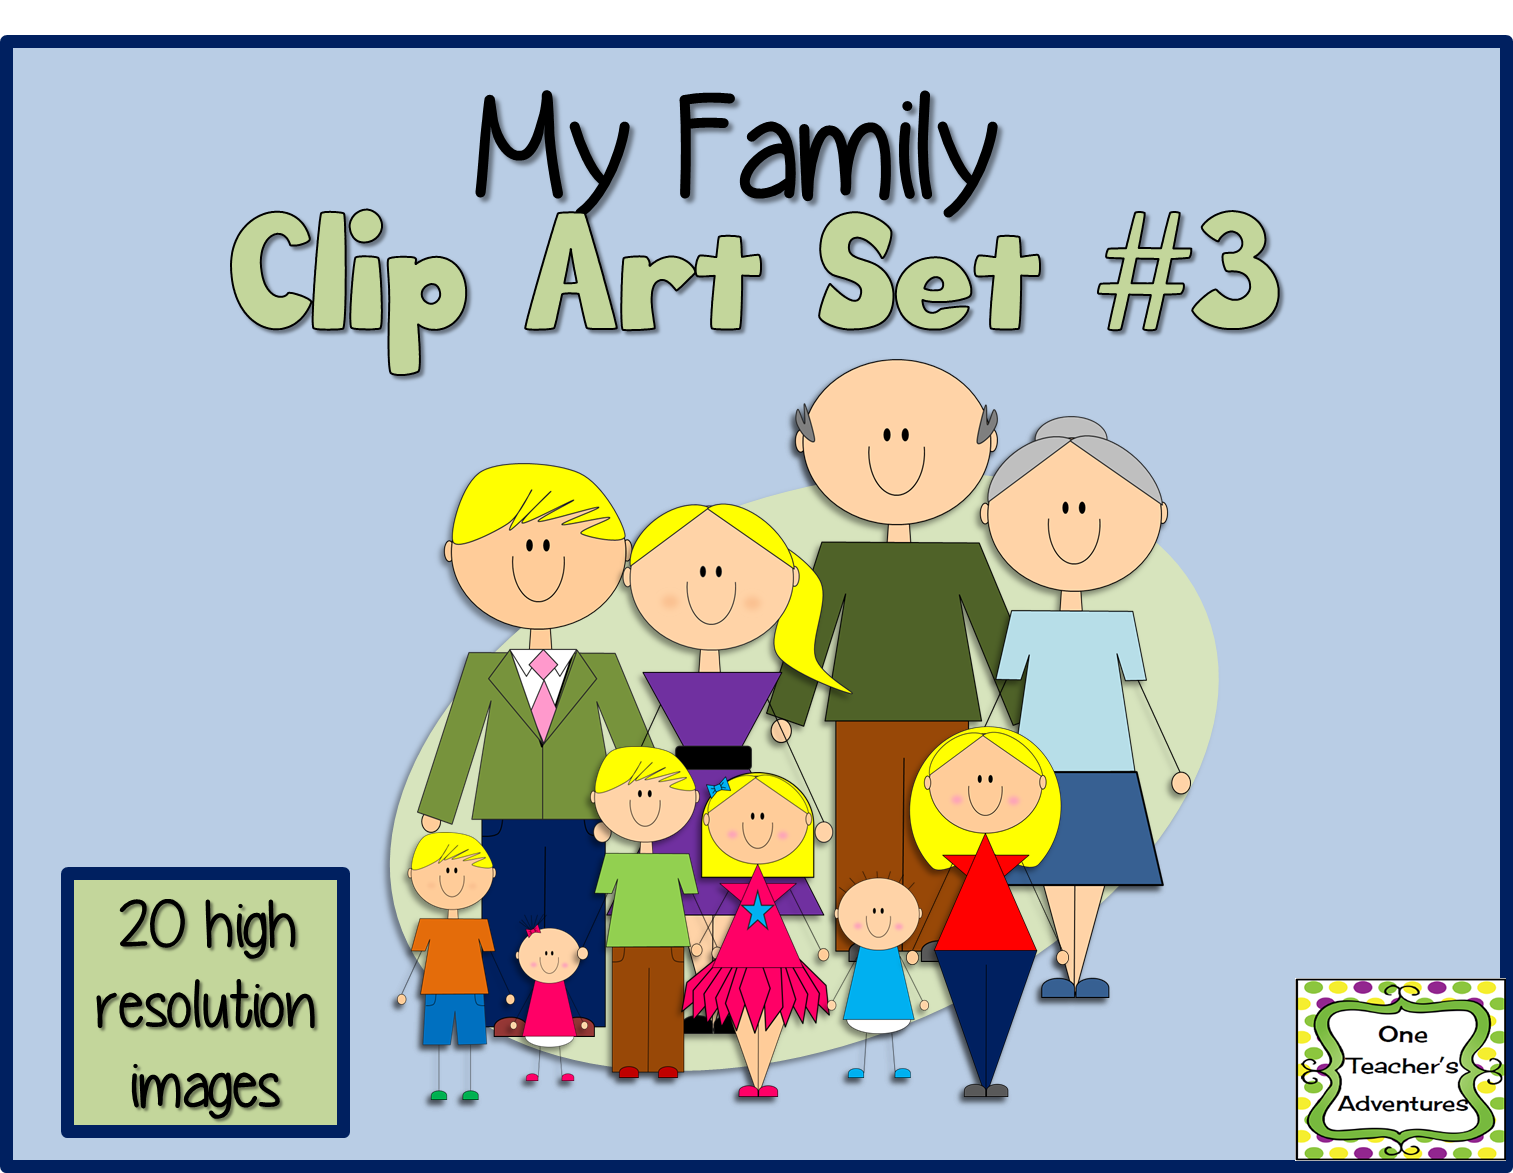 http://www.teacherspayteachers.com/Product/My-Family-Clip-Art-Set-3-1393379